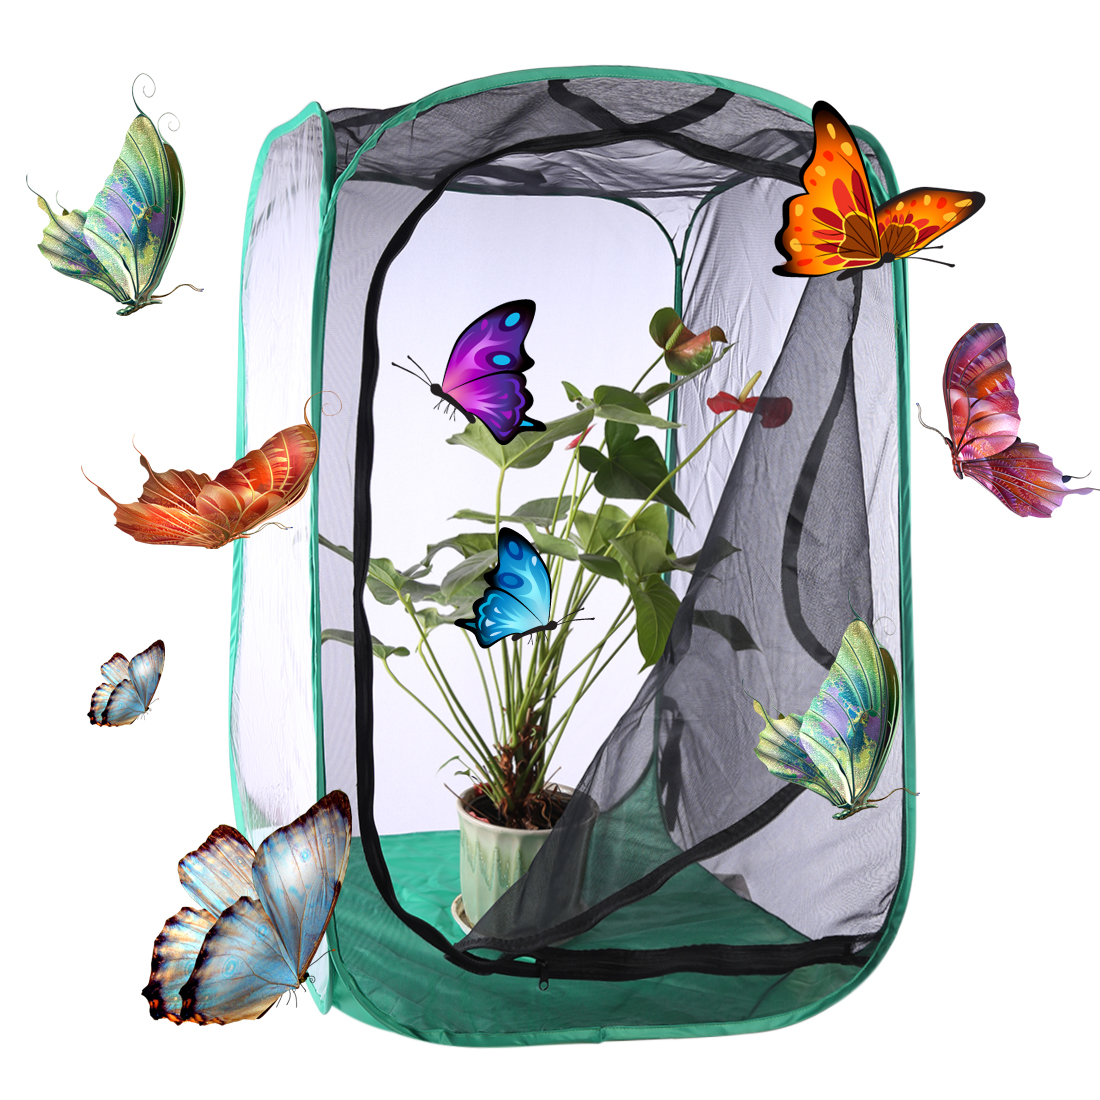 Outdoor Neture Playing Sport Butterfly and Insect Habitat Cage Mesh Terrarium Pop-up  Toys for Kids - Size LOutdoor Neture Playing Sport Butterfly and Insect Habitat Cage Mesh Terrarium Pop-up  Toys for Kids - Size L